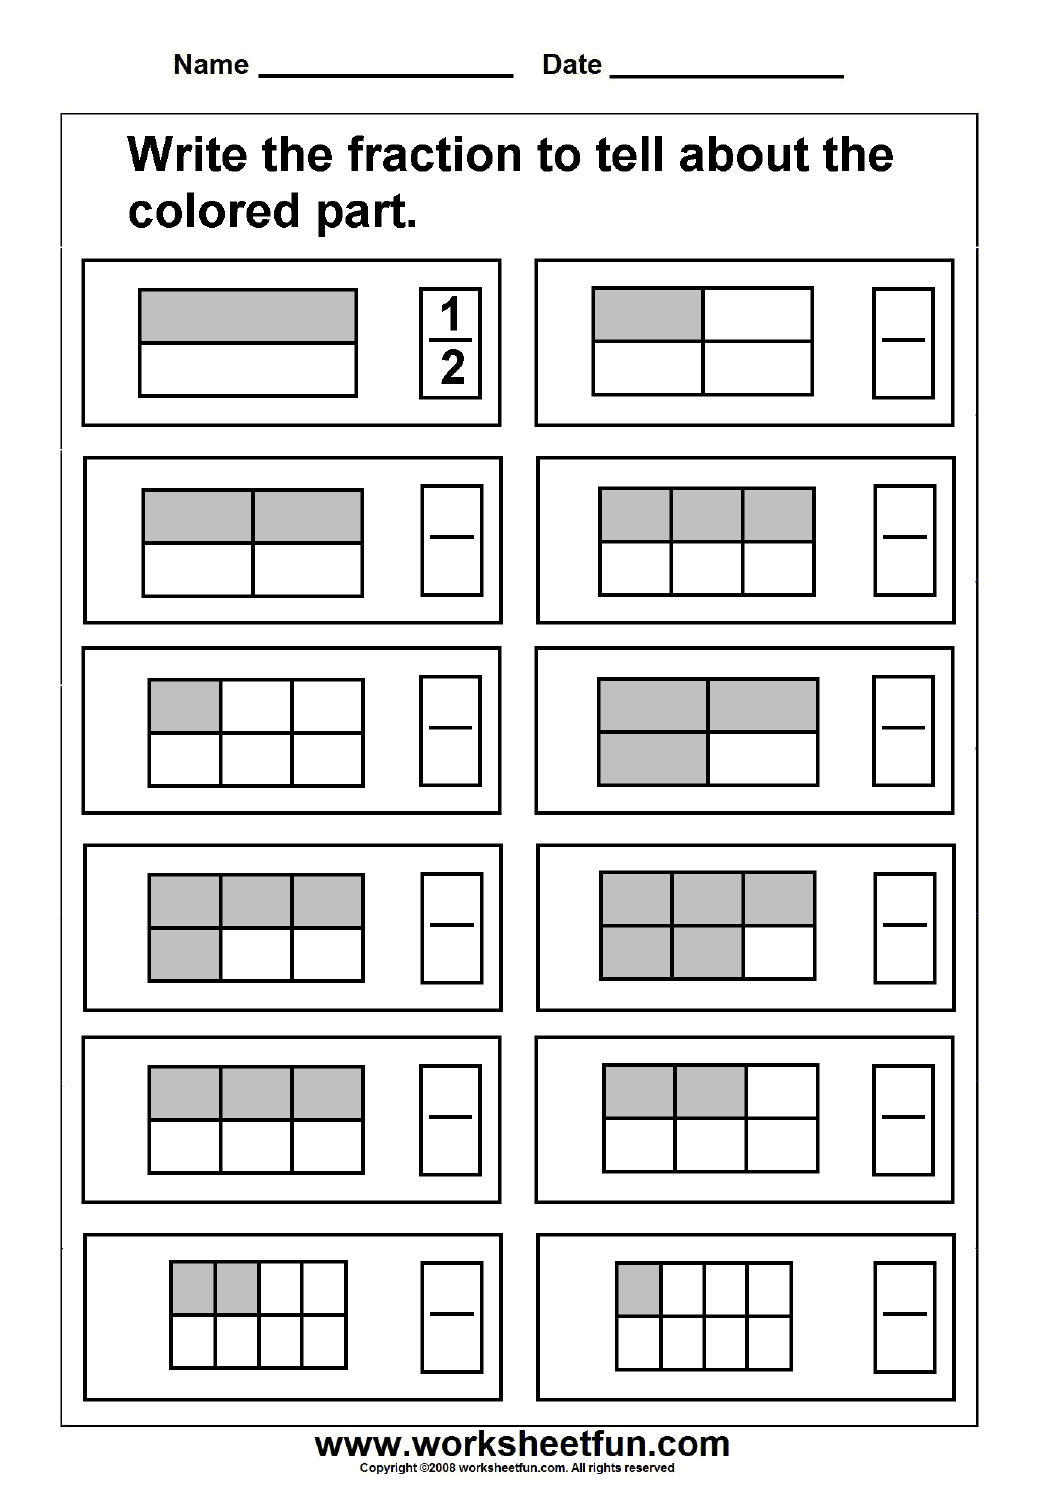 math worksheet : fraction  model  3 worksheets  free printable worksheets  : Free Worksheets On Fractions